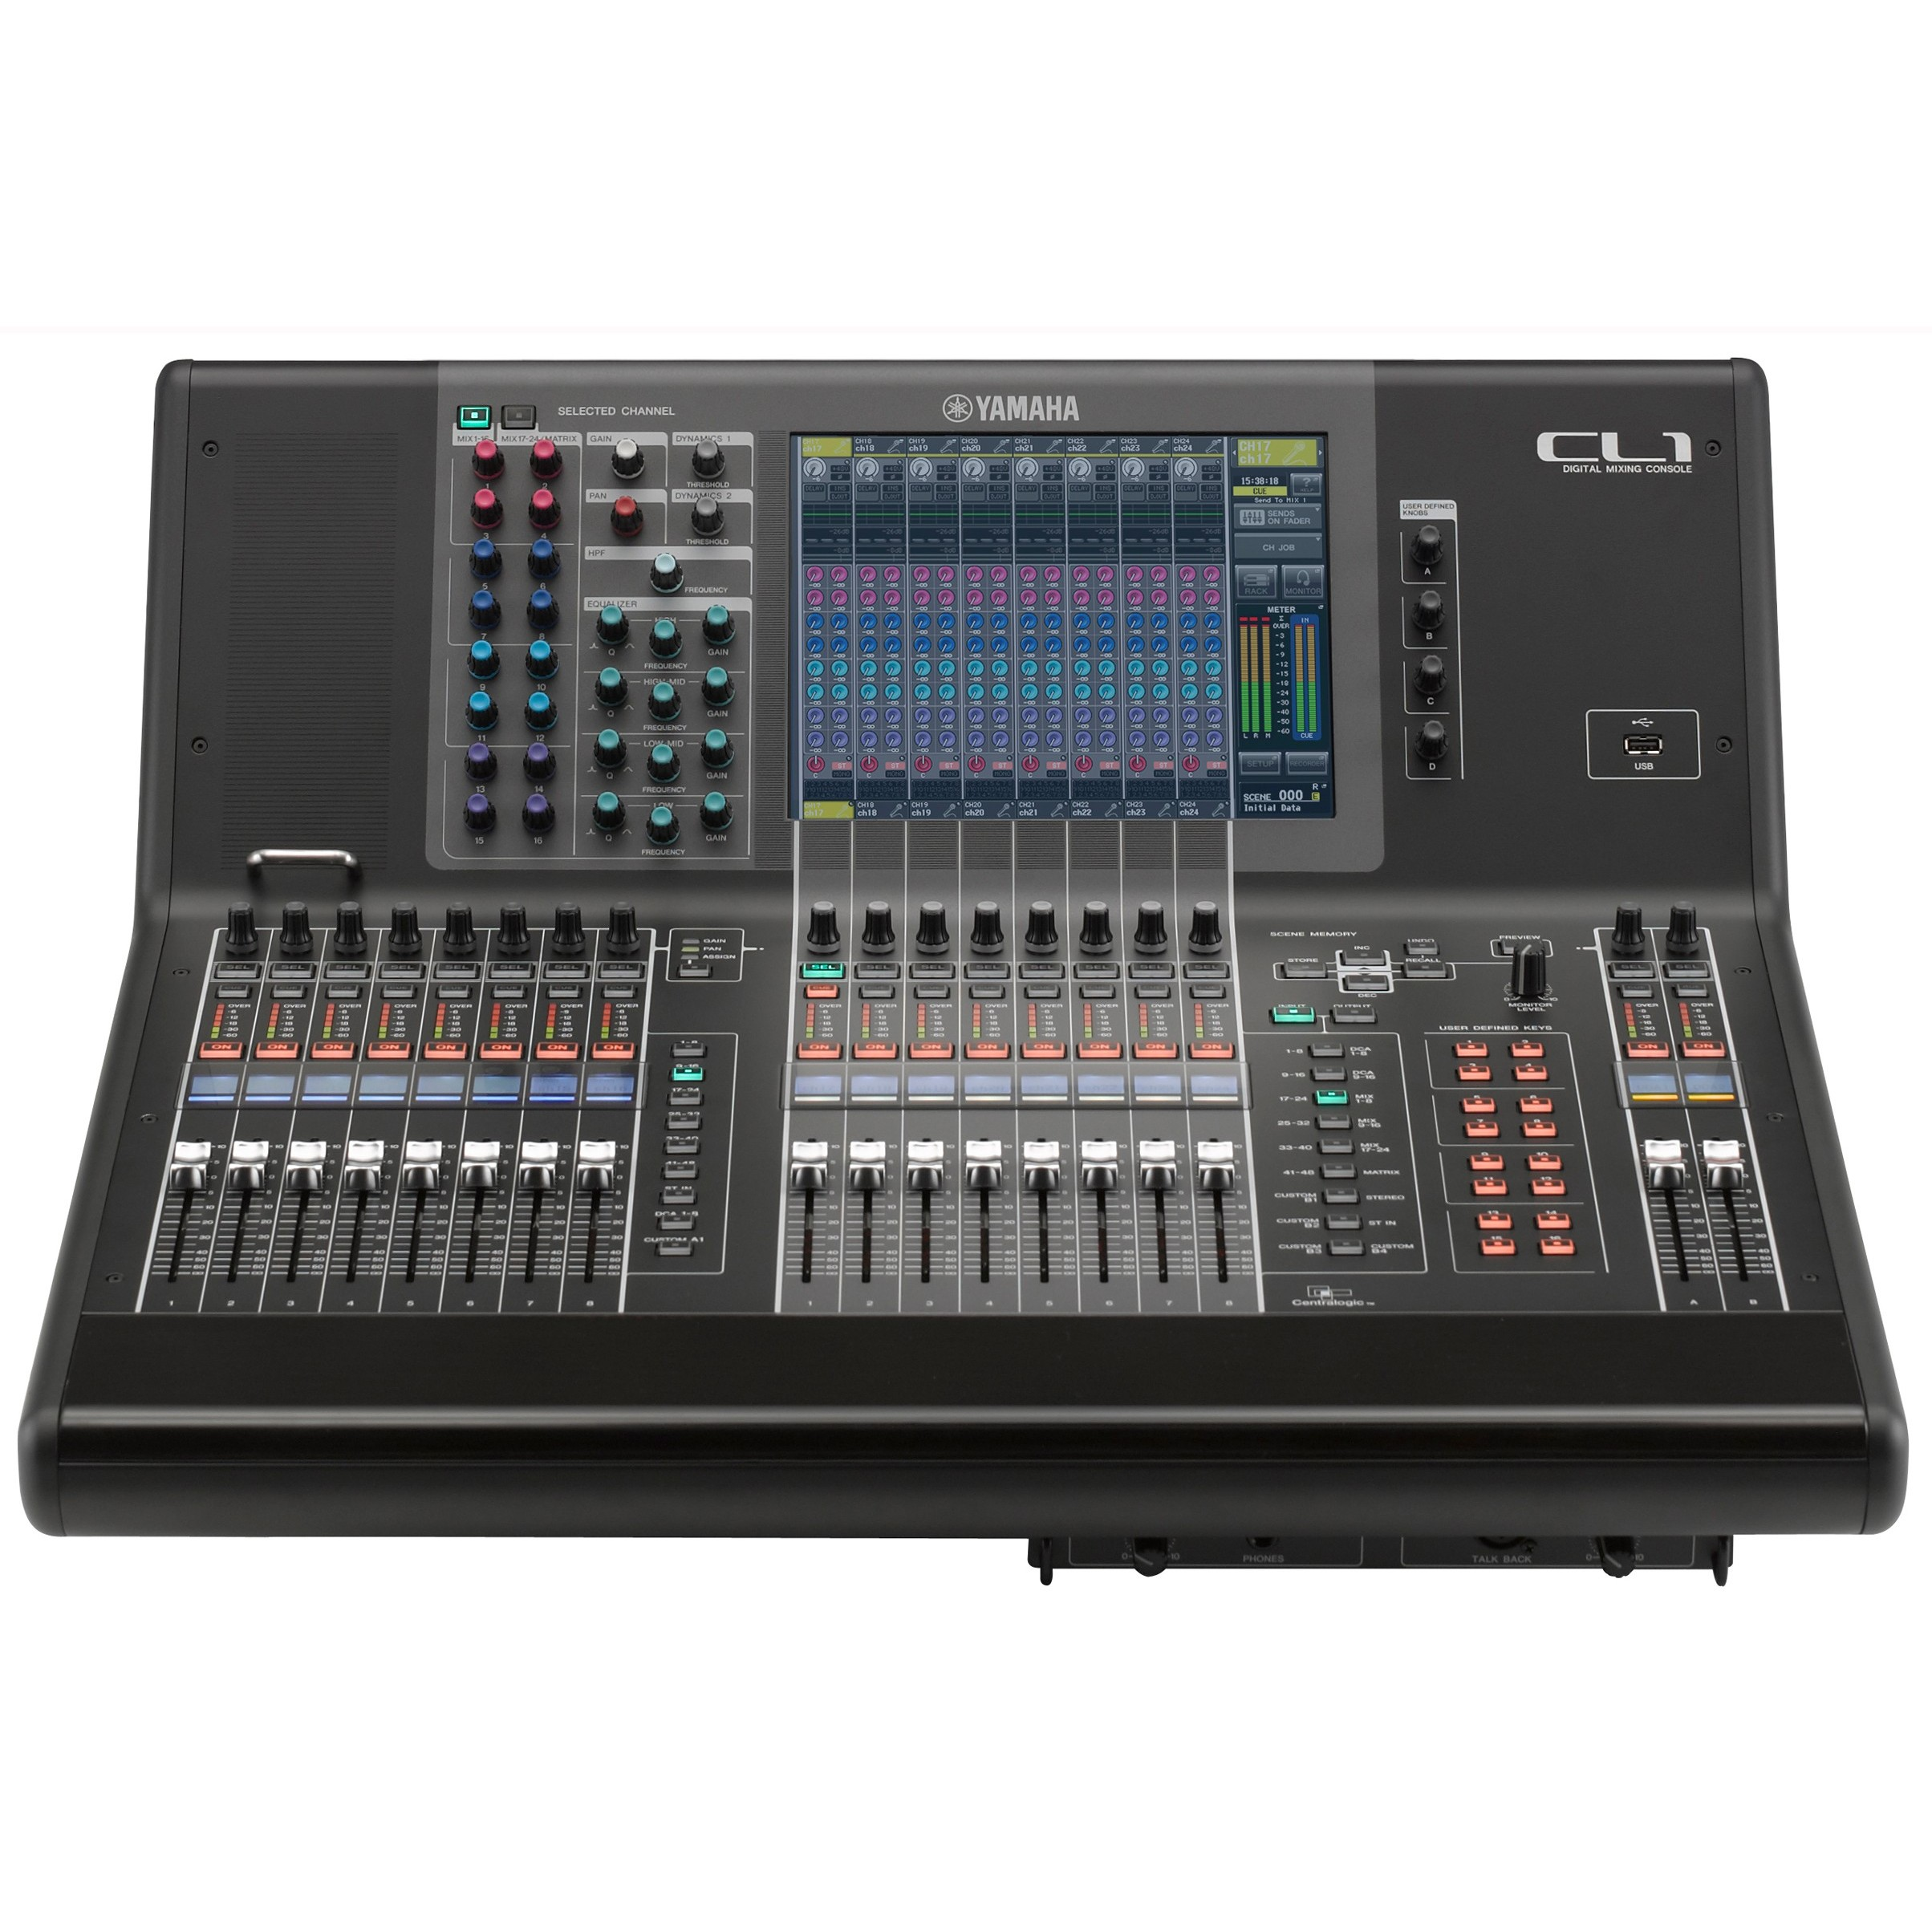 Yamaha cl1 digital mixing console for Yamaha live console